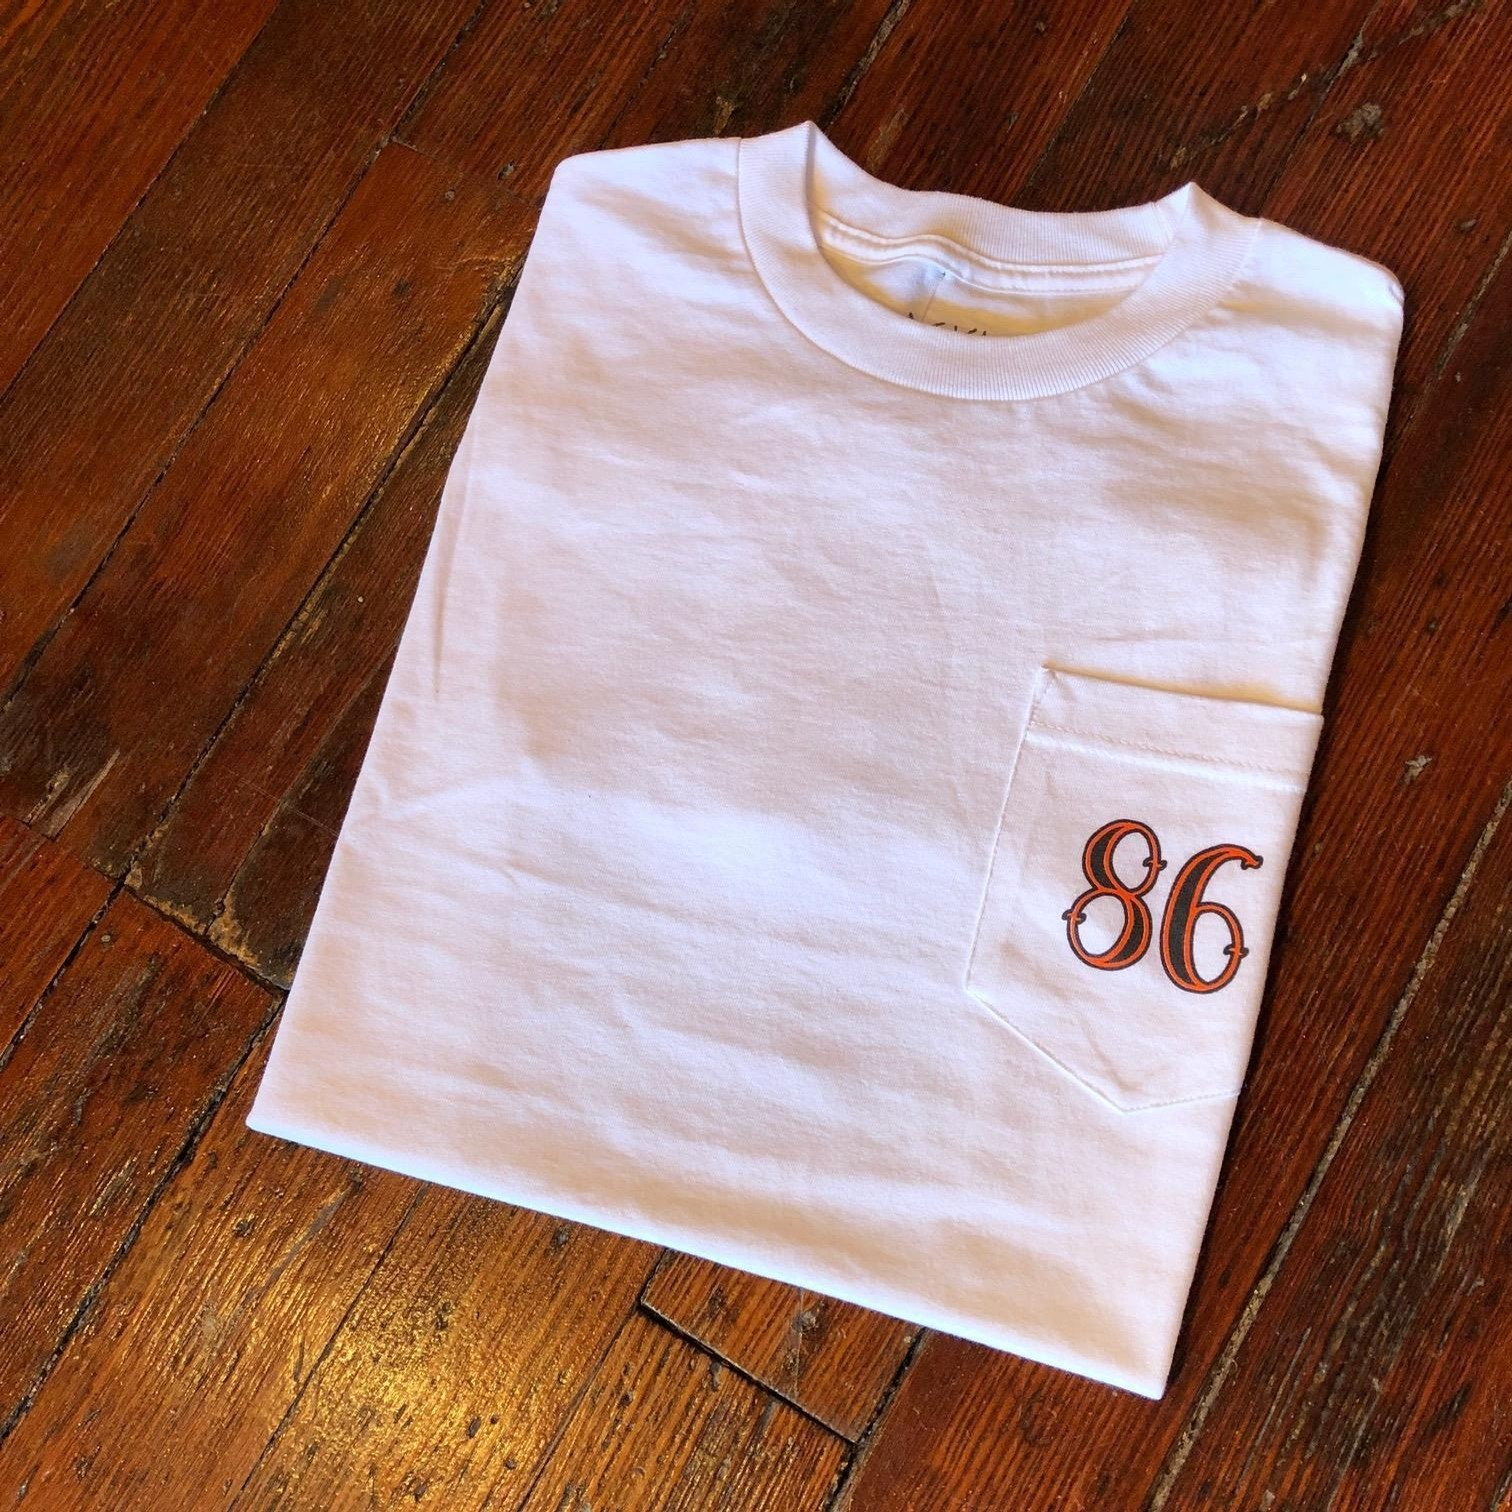 86 POCKET TEE (WHITE/ORANGE/BLACK)